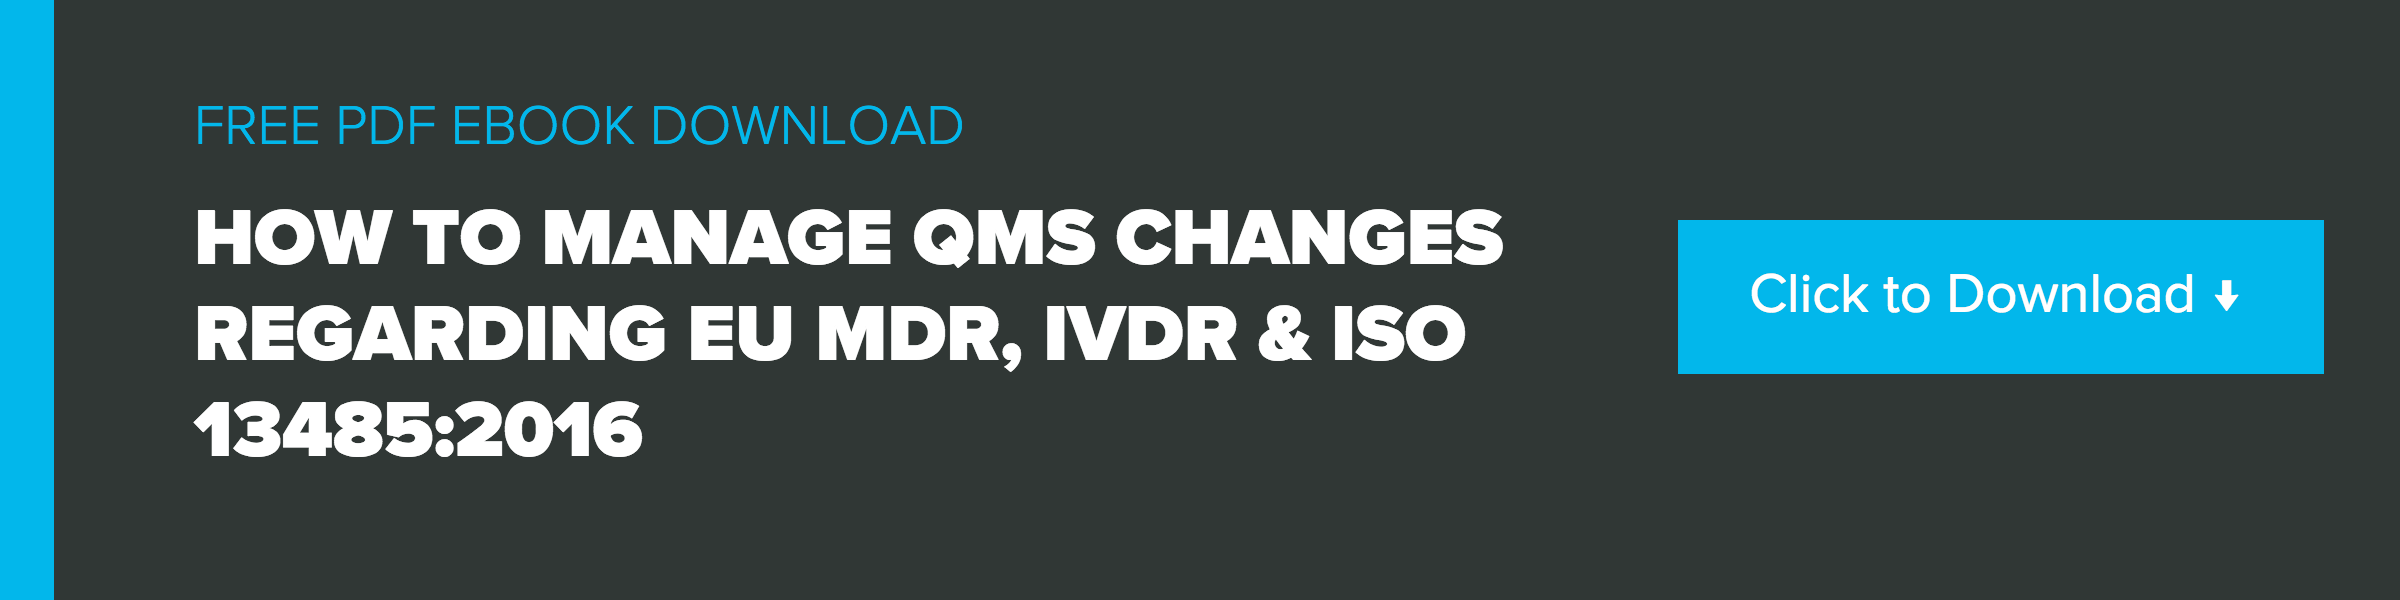 Medical device qms changes how to manage changes regarding eu mdr click here to download the ebook fandeluxe Image collections